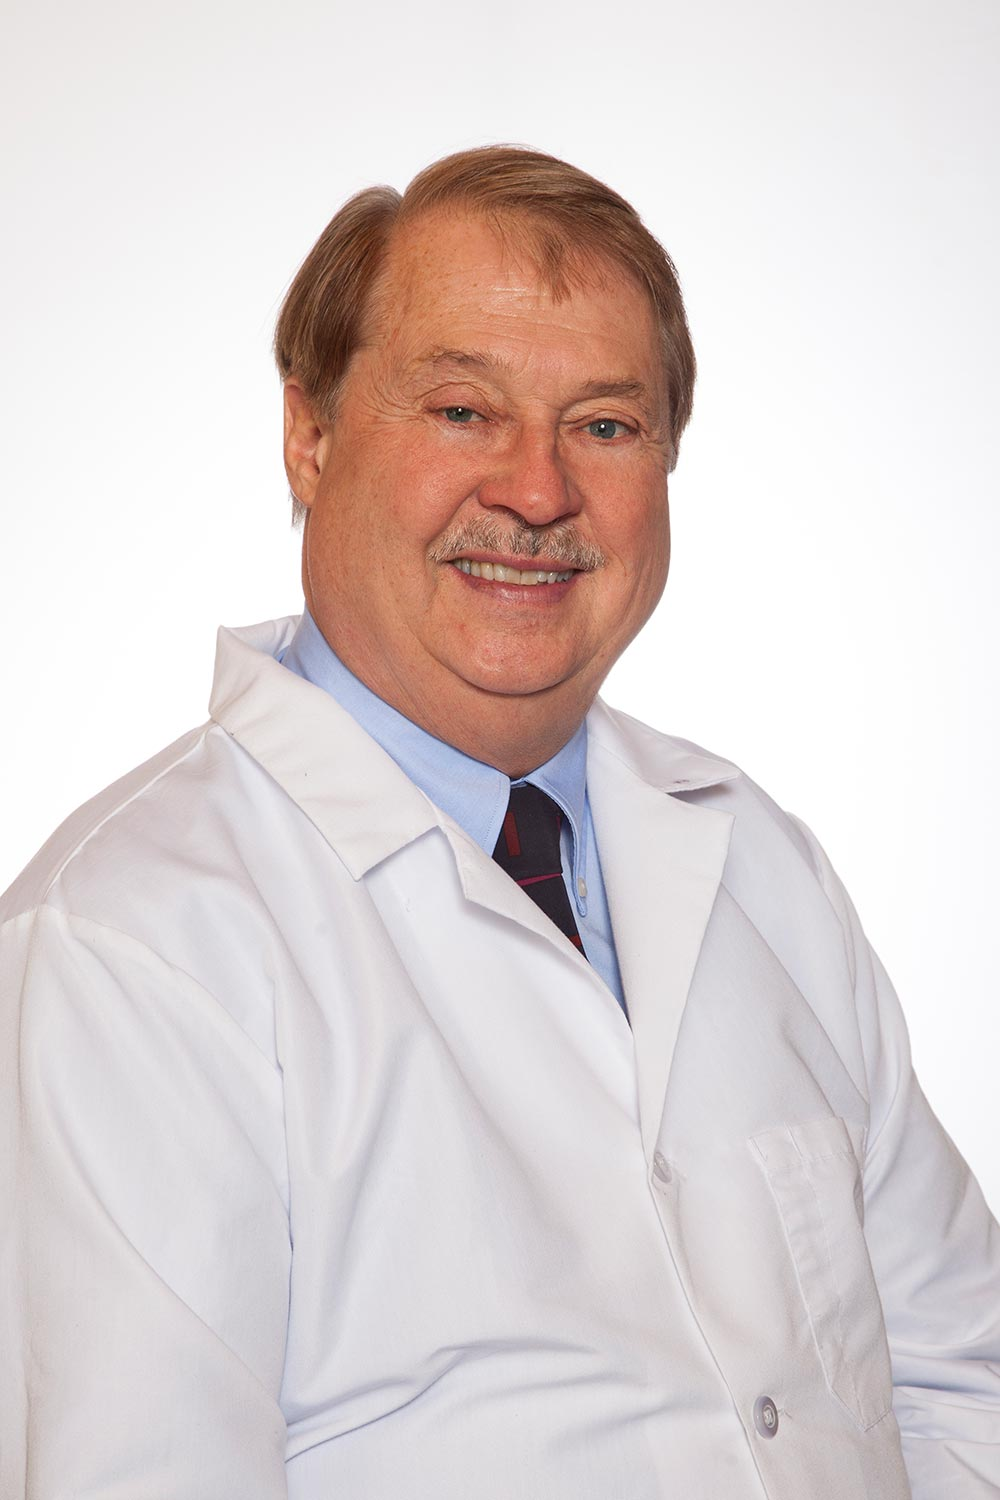 Dr. Paul W. Orton, MD, MD